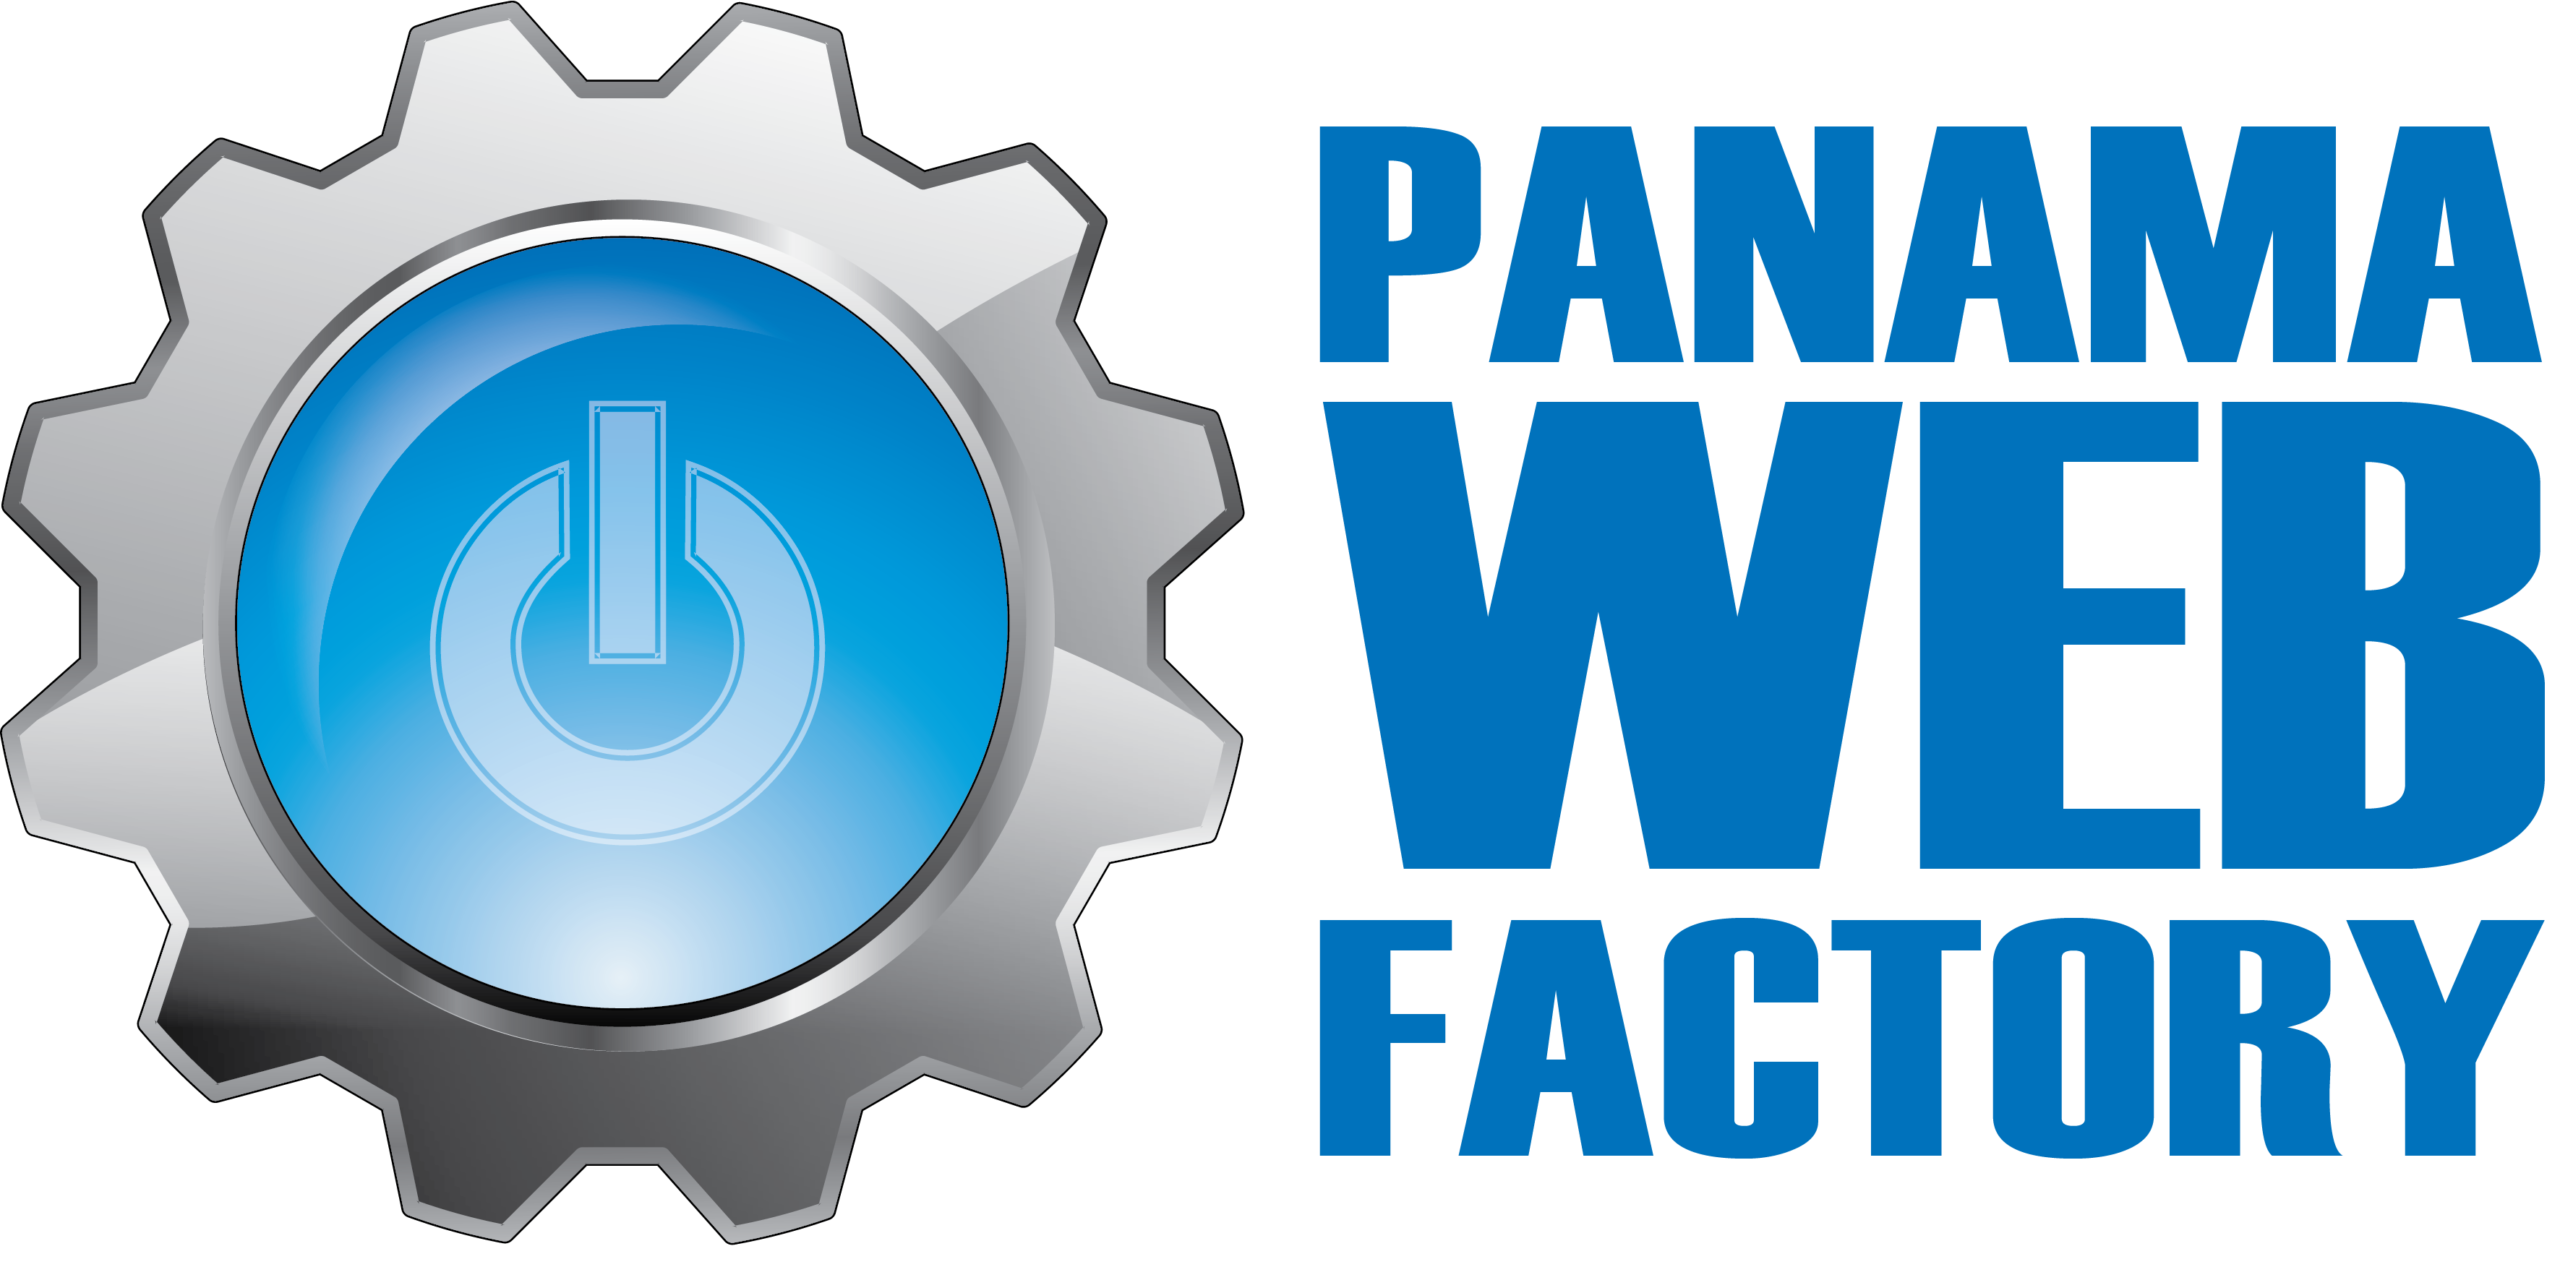 Panama Web Factory